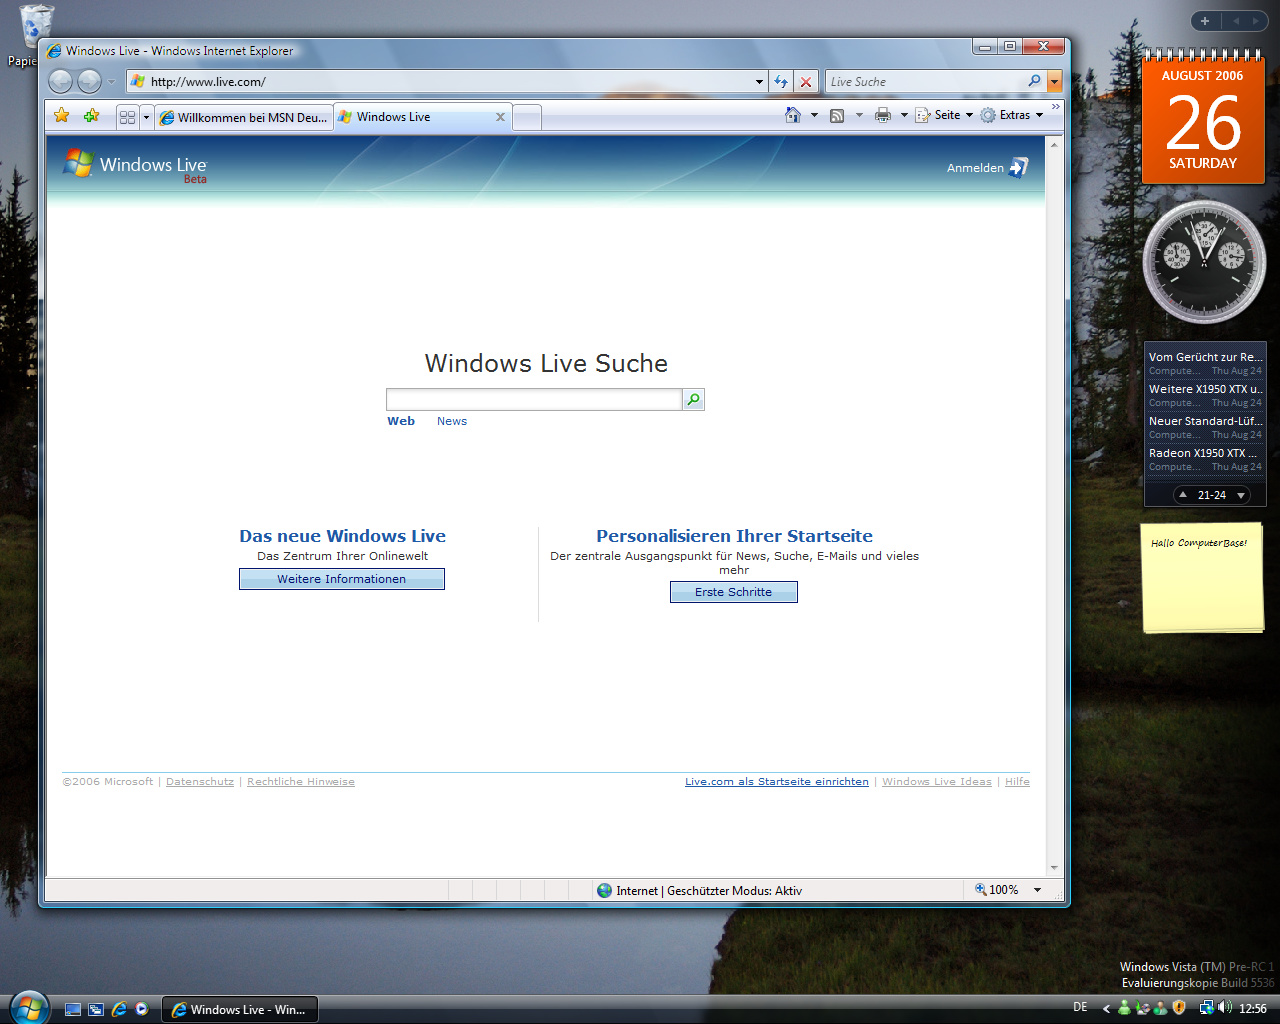 Windows Vista Build 5536 - Internet Explorer 7.0 - Standardmäßig mit zwei Startseiten